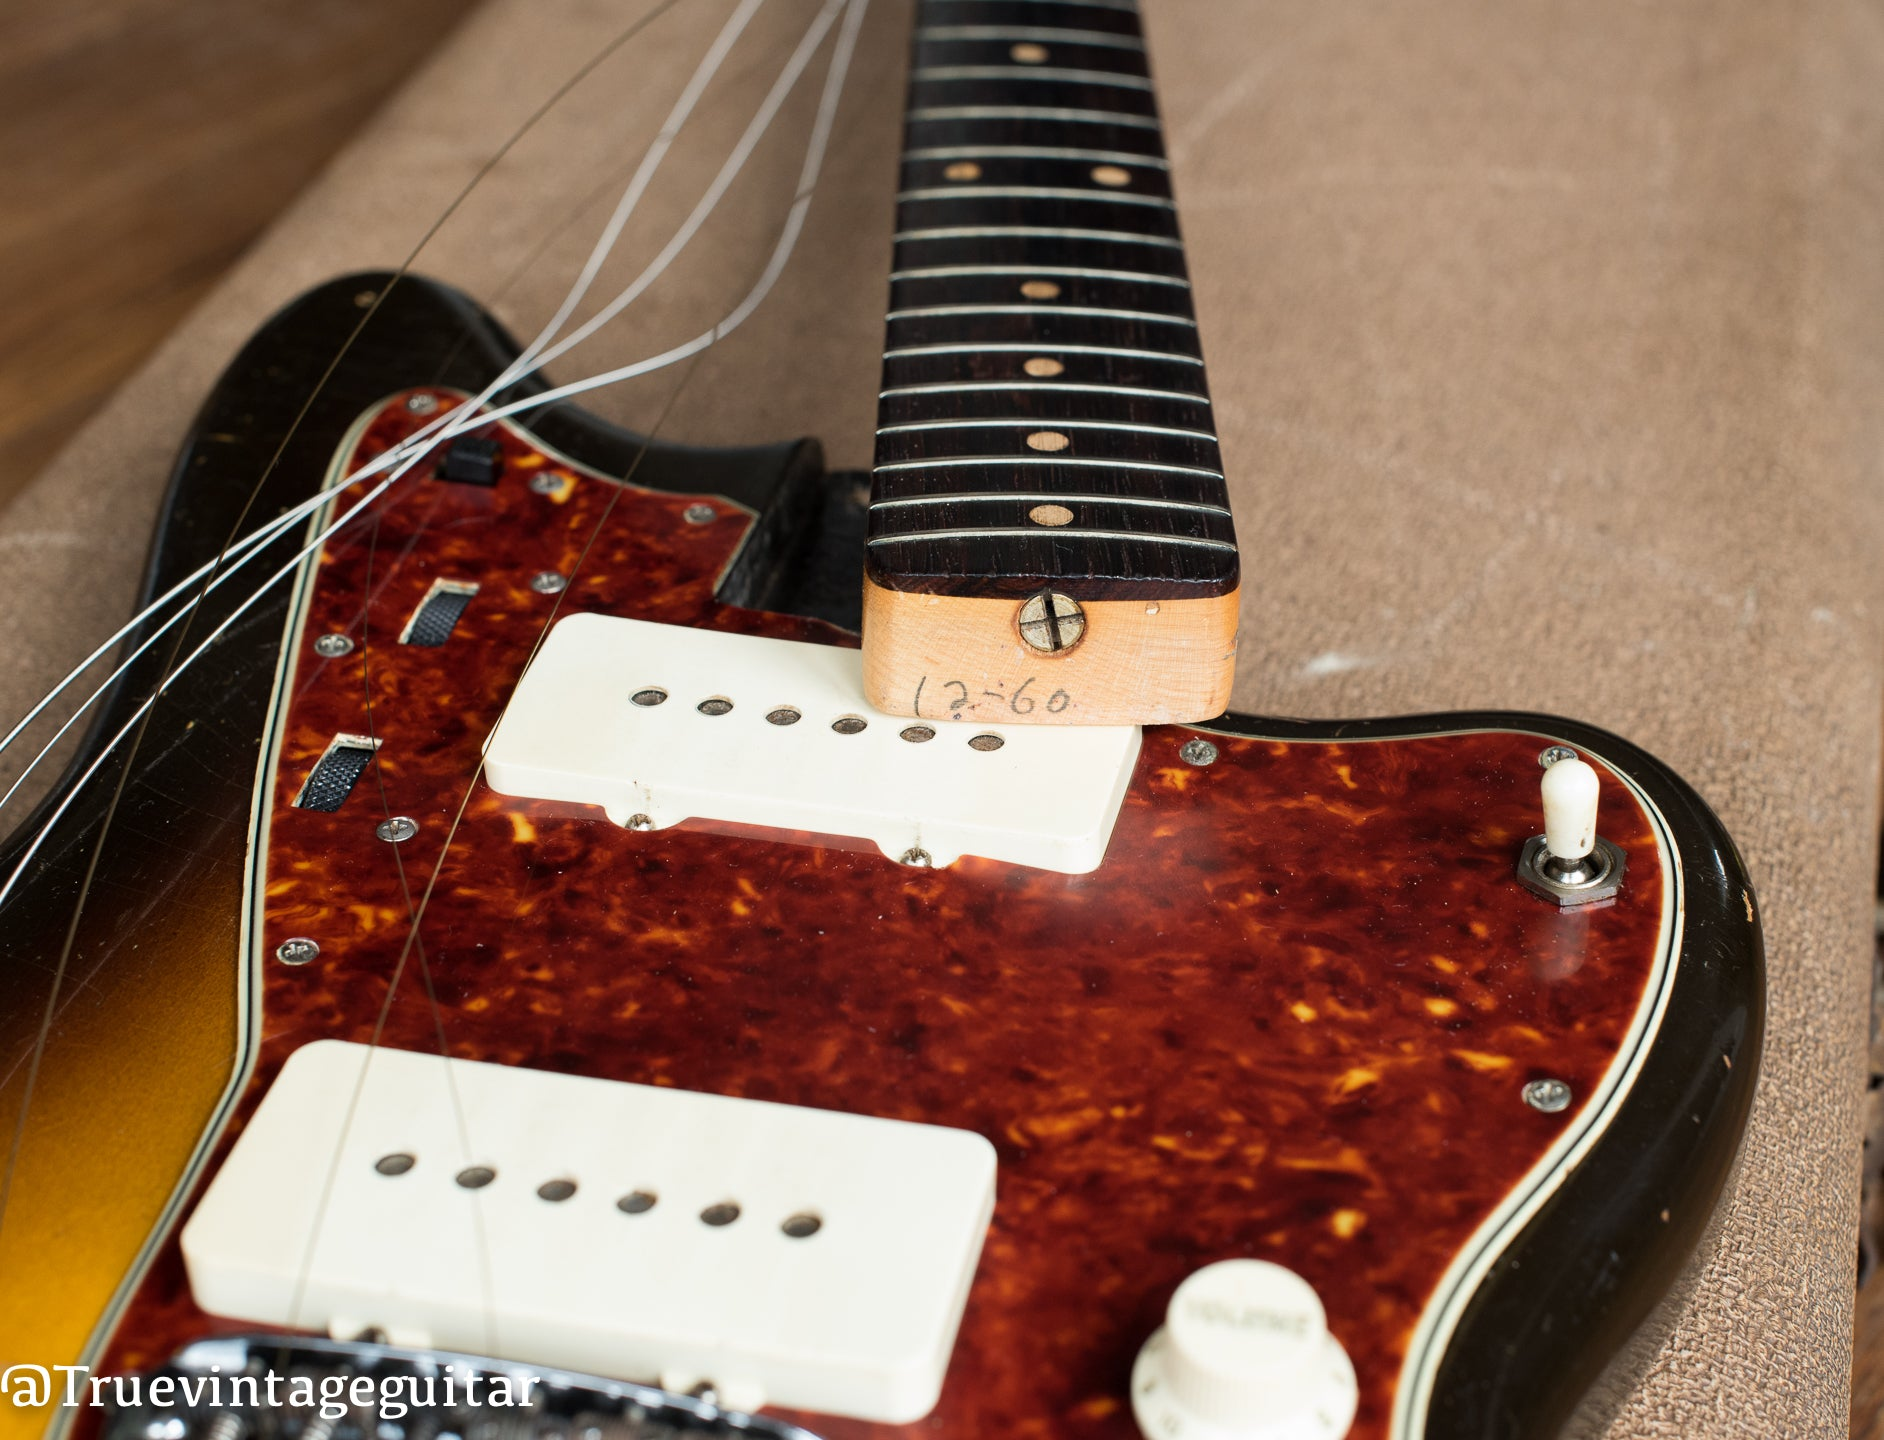 How to date vintage Fender Jazzmaster guitar, how old is my Fender Jazzmaster guitar